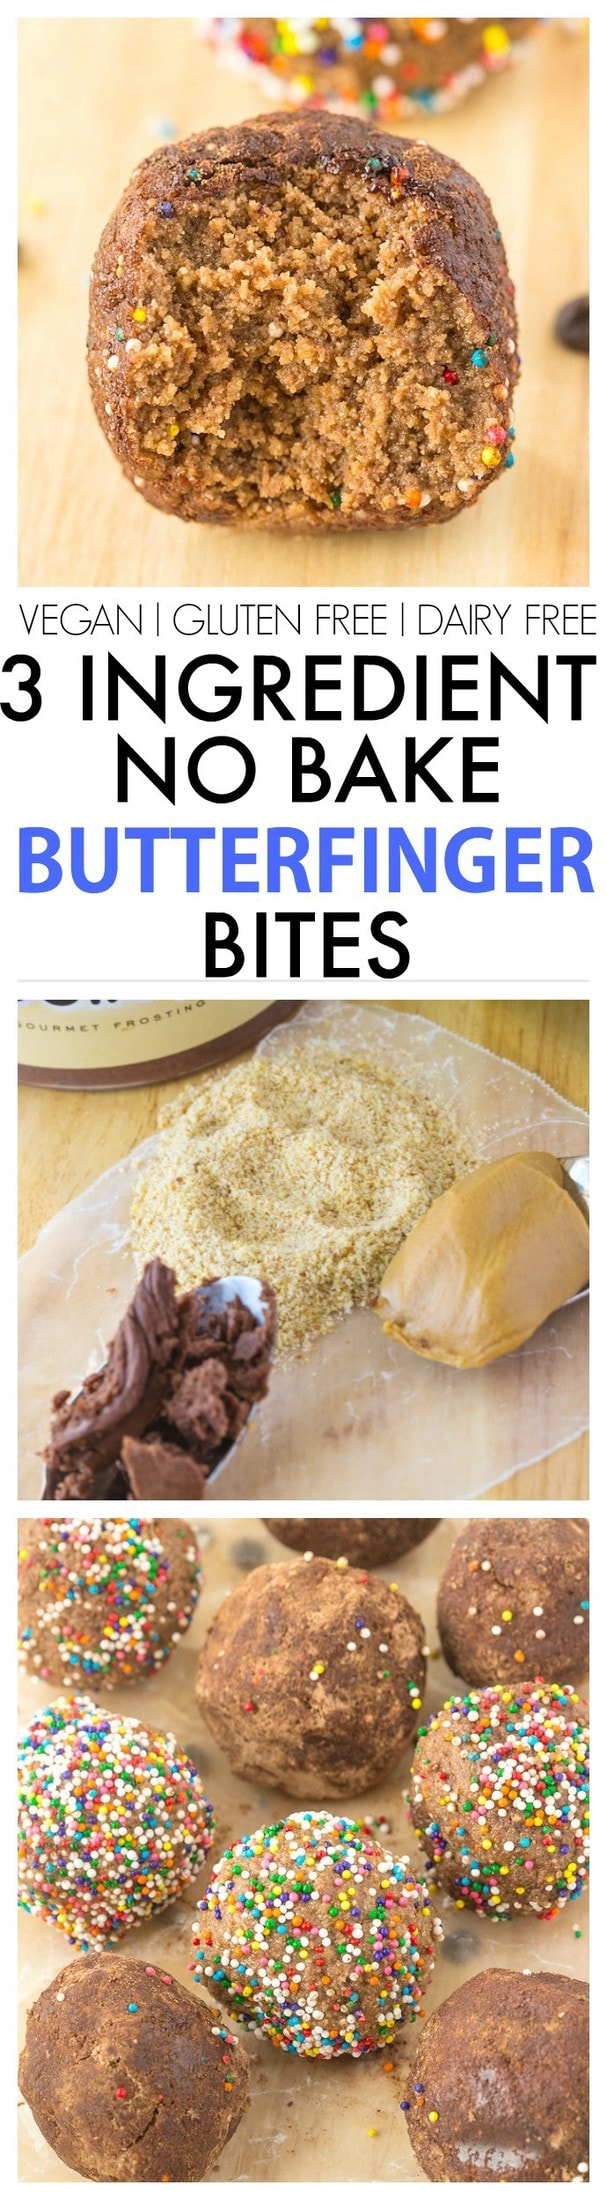 Three Ingredient No Bake Butterfinger Bites Recipe- Quick, easy and SO delicious, you won't believe how delicious and unique this recipe is using leftover bread! {vegan, gluten free, dairy free options}